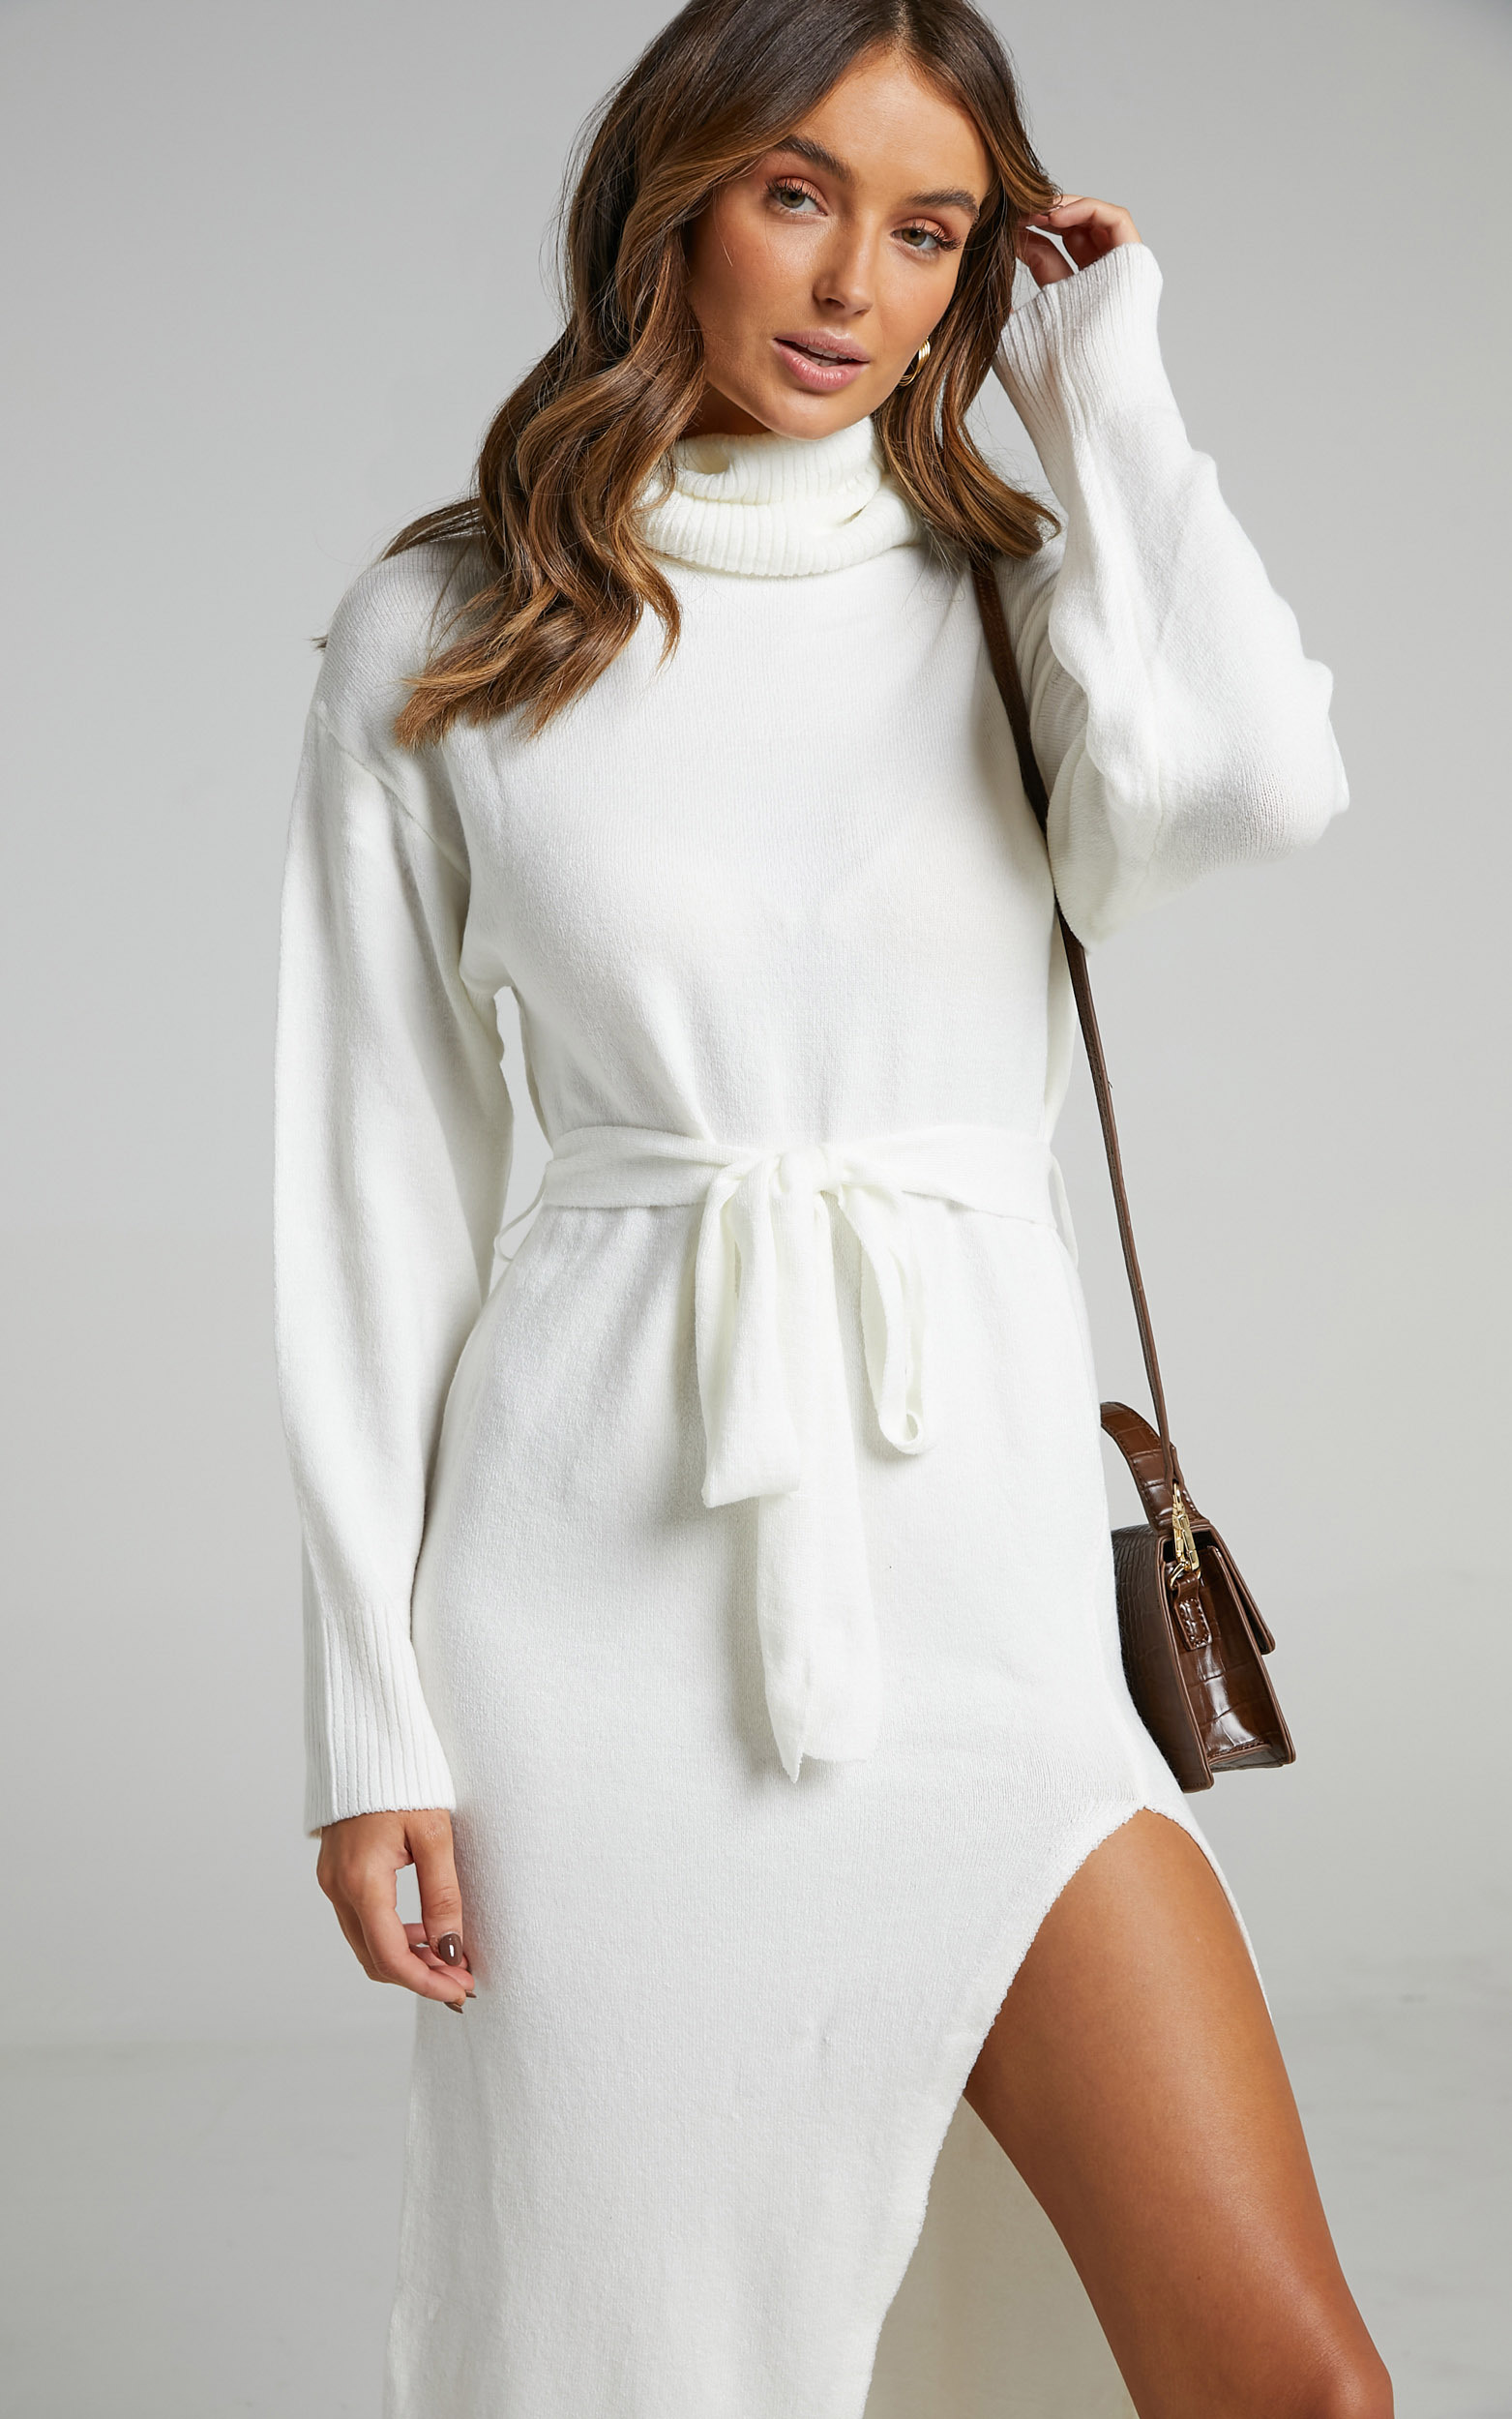 Marbella Turtle Neck Knit Dress in White - 06, WHT1, hi-res image number null